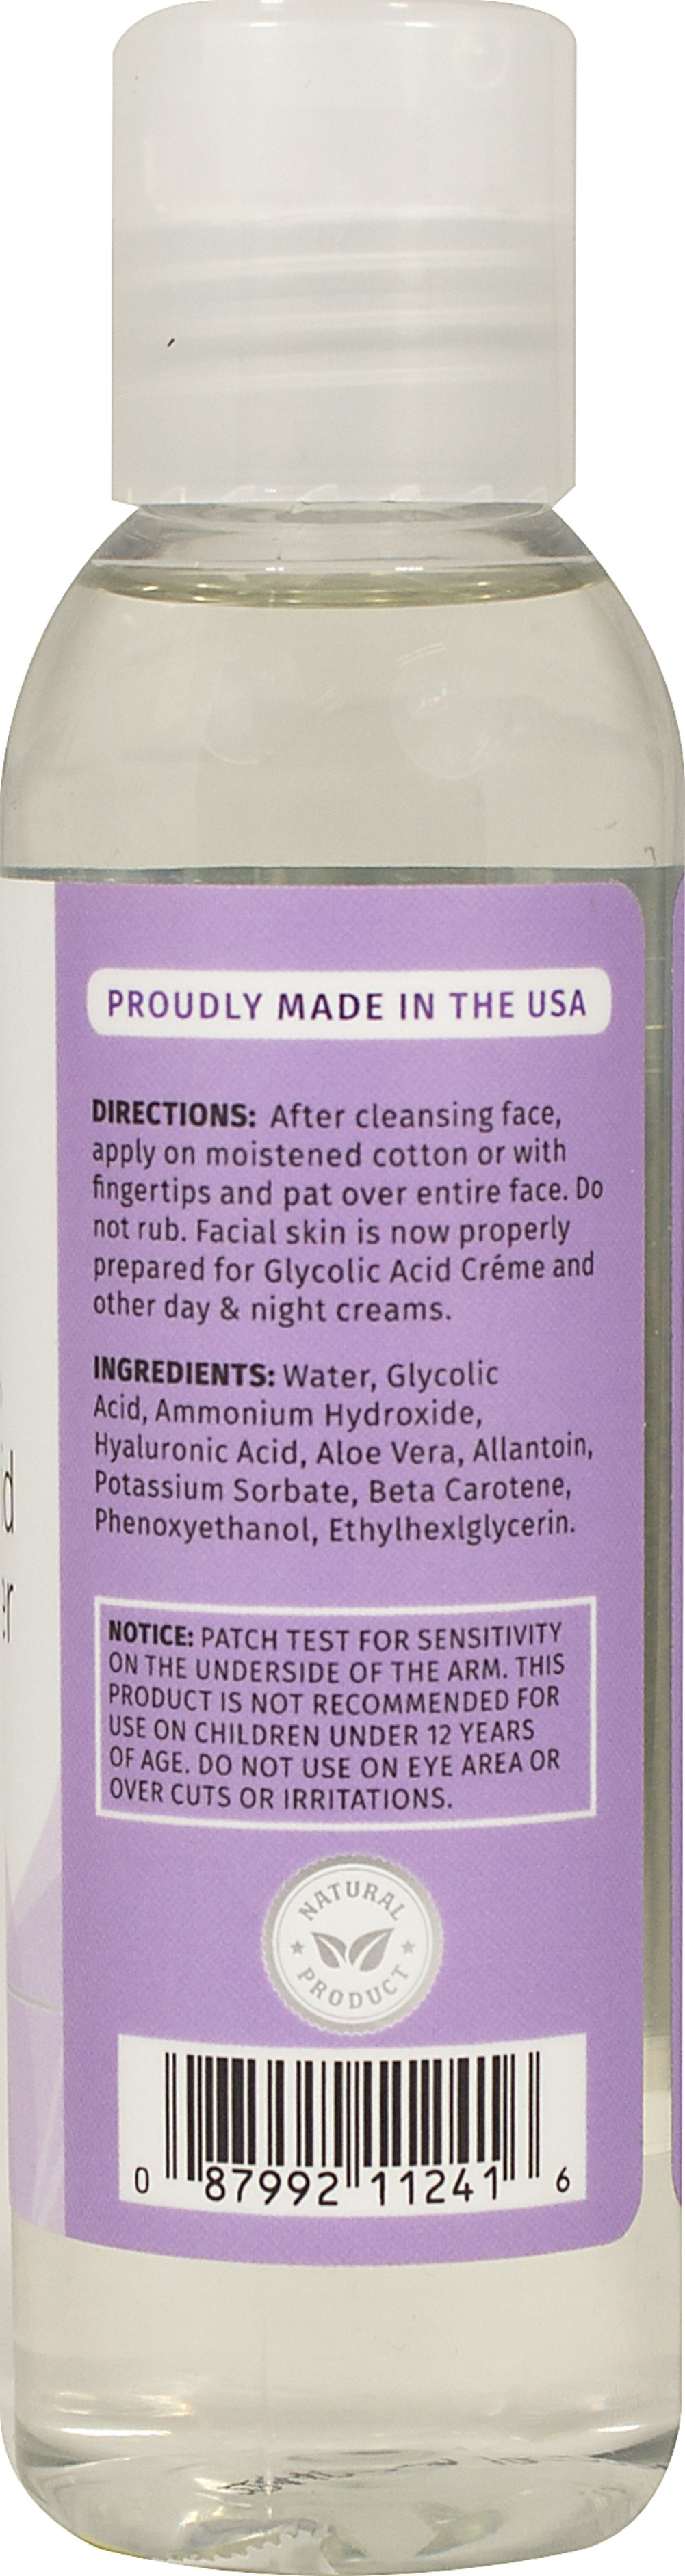 Glycolic Acid Facial Toner